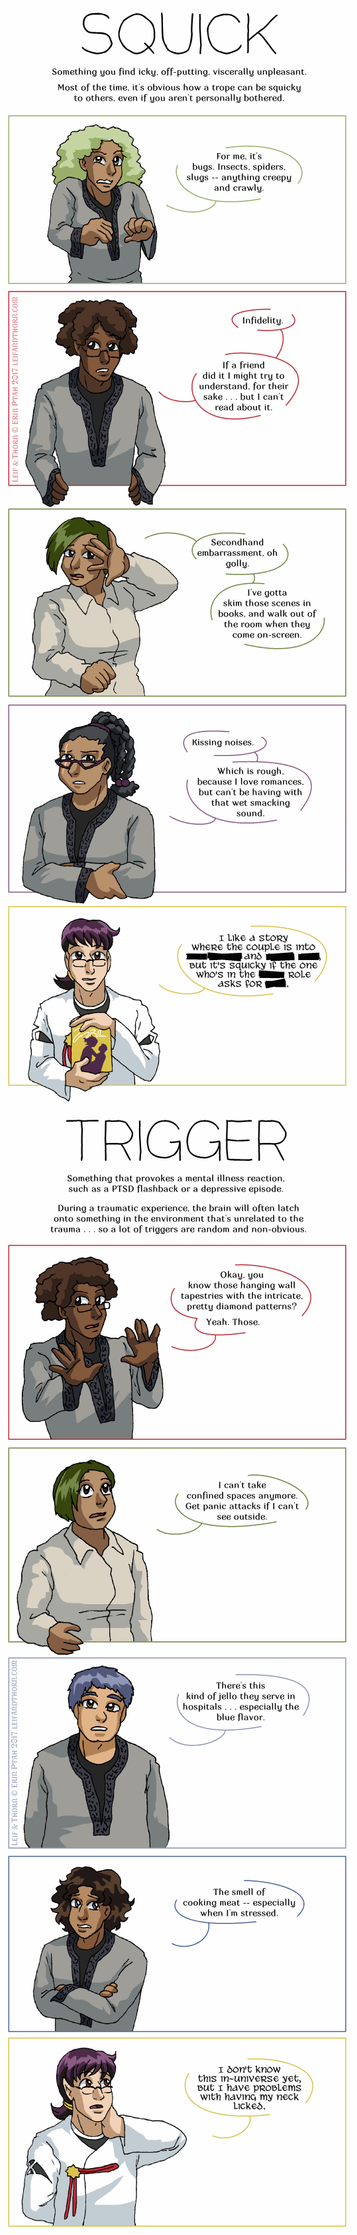 Squicks vs. Triggers by ErinPtah